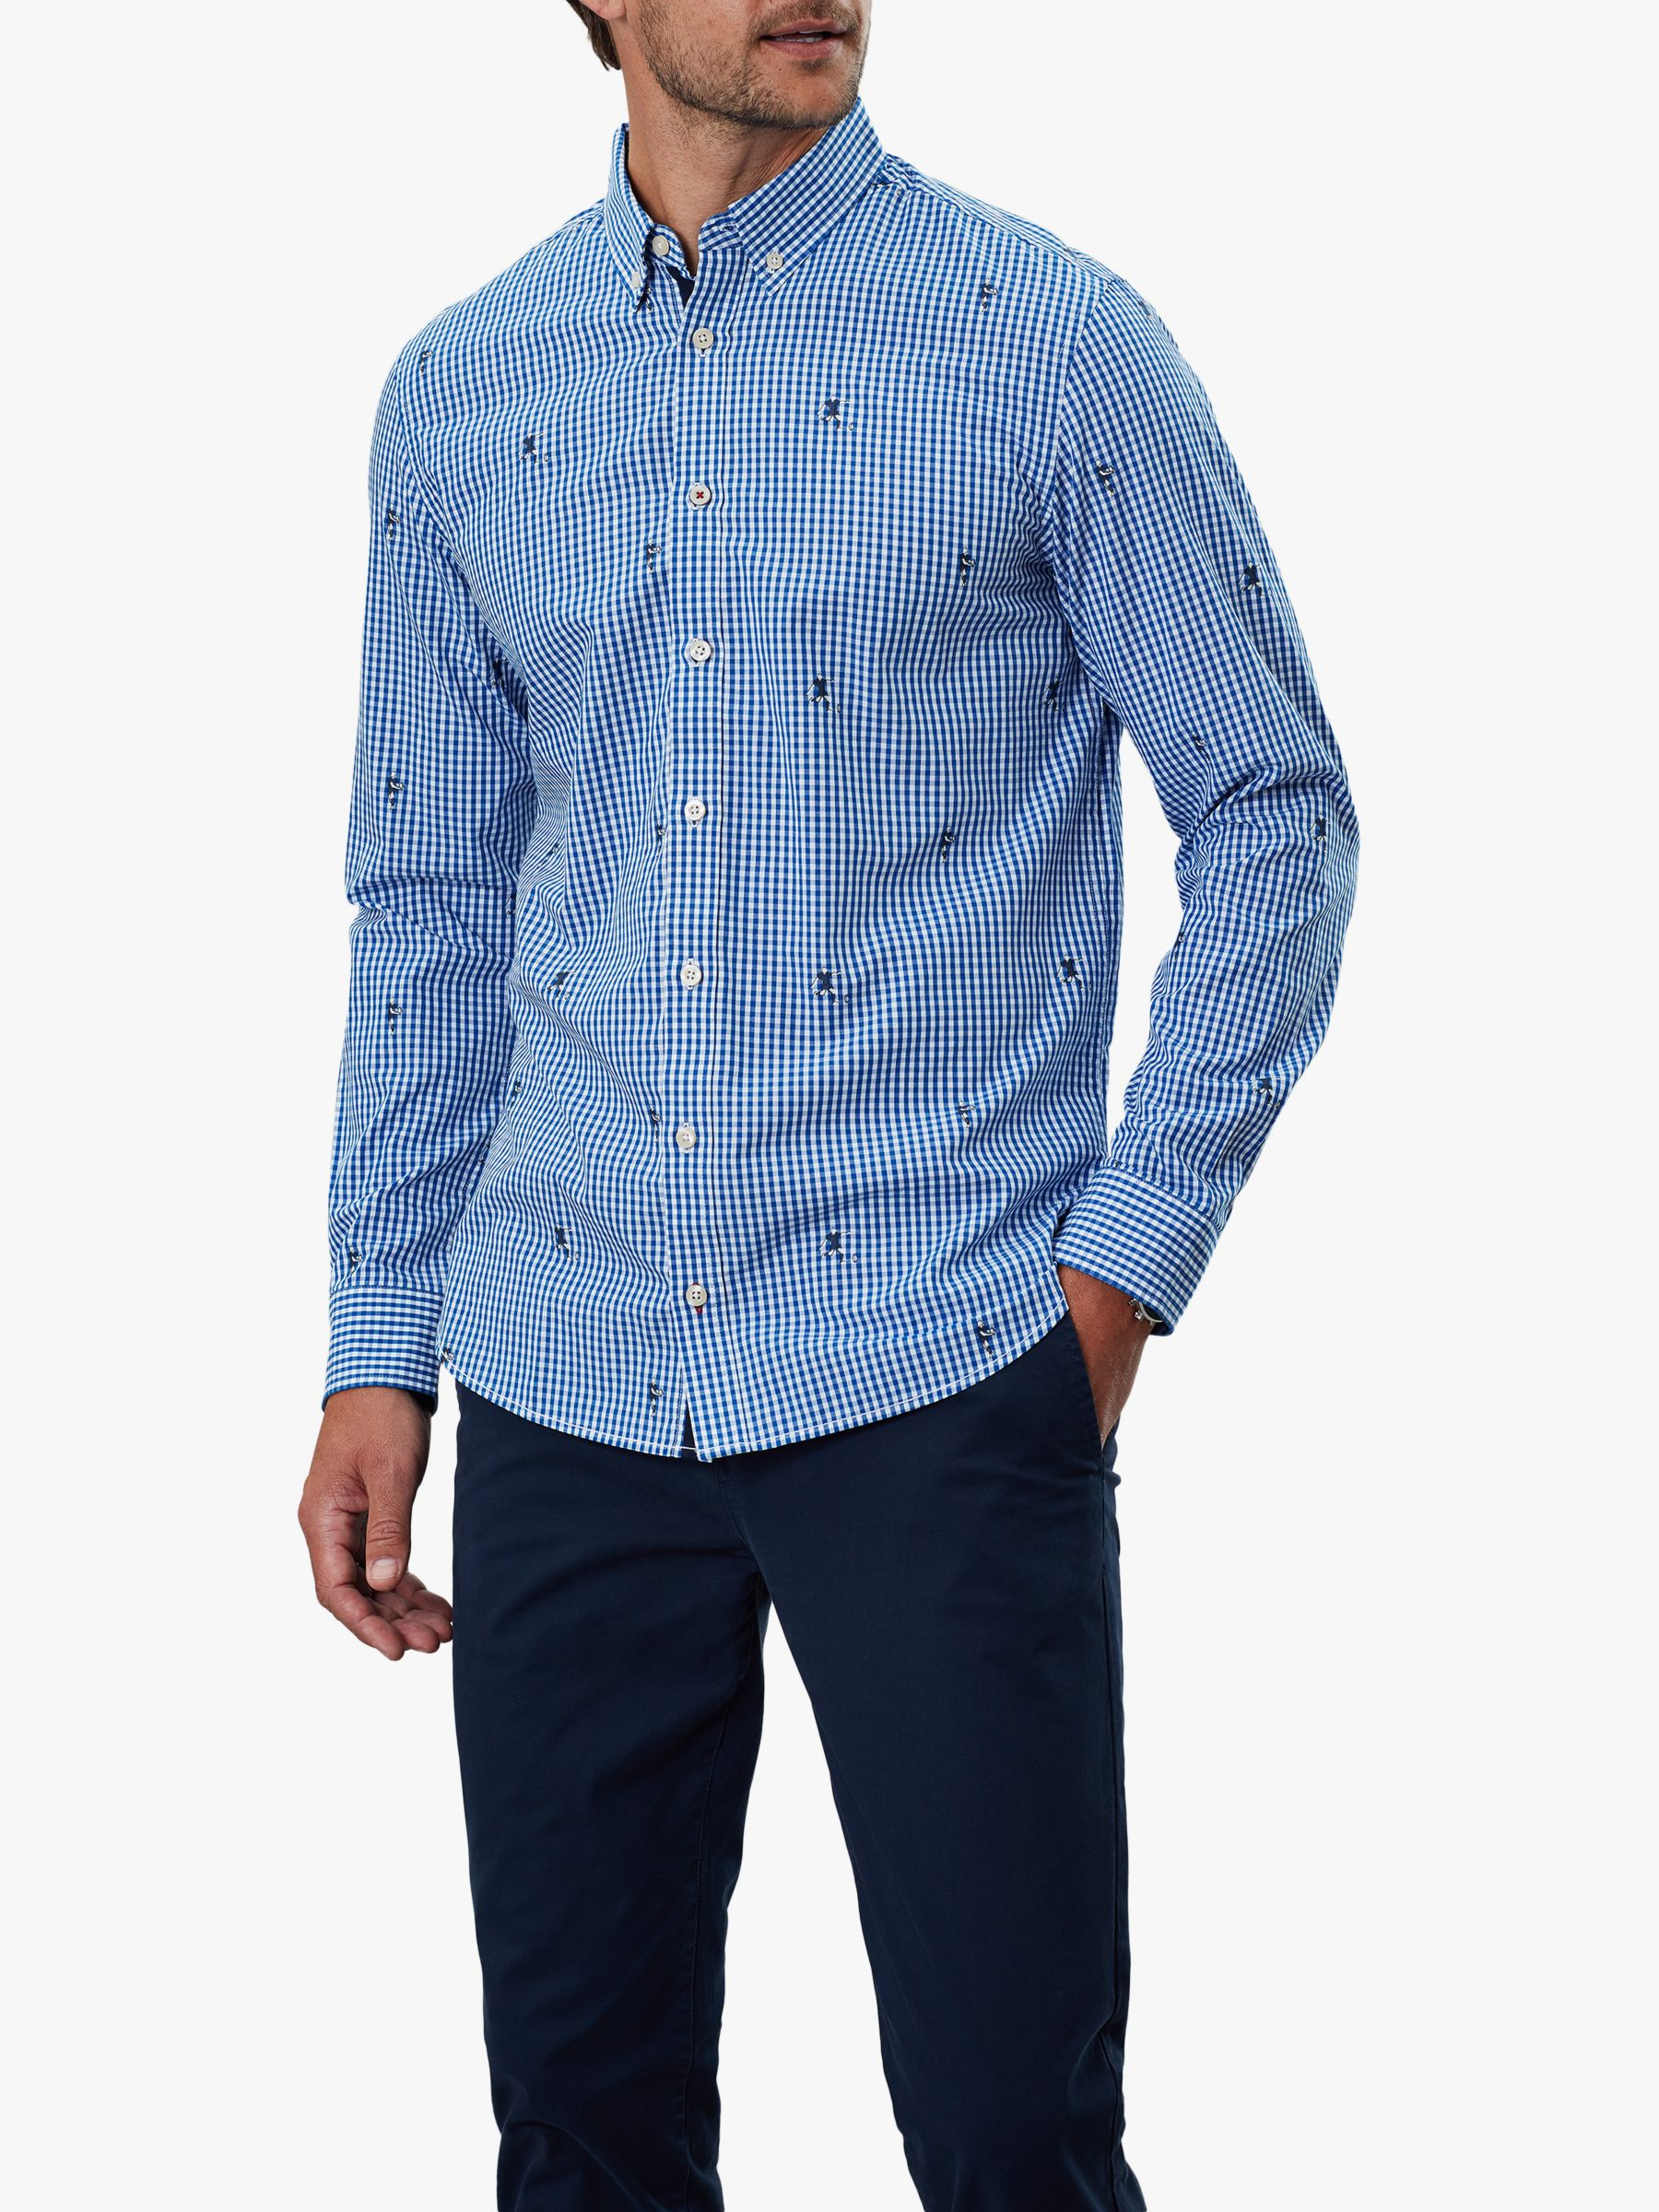 Joules Joules Coleridge Gingham Long Sleeve Shirt, Blue Rugby